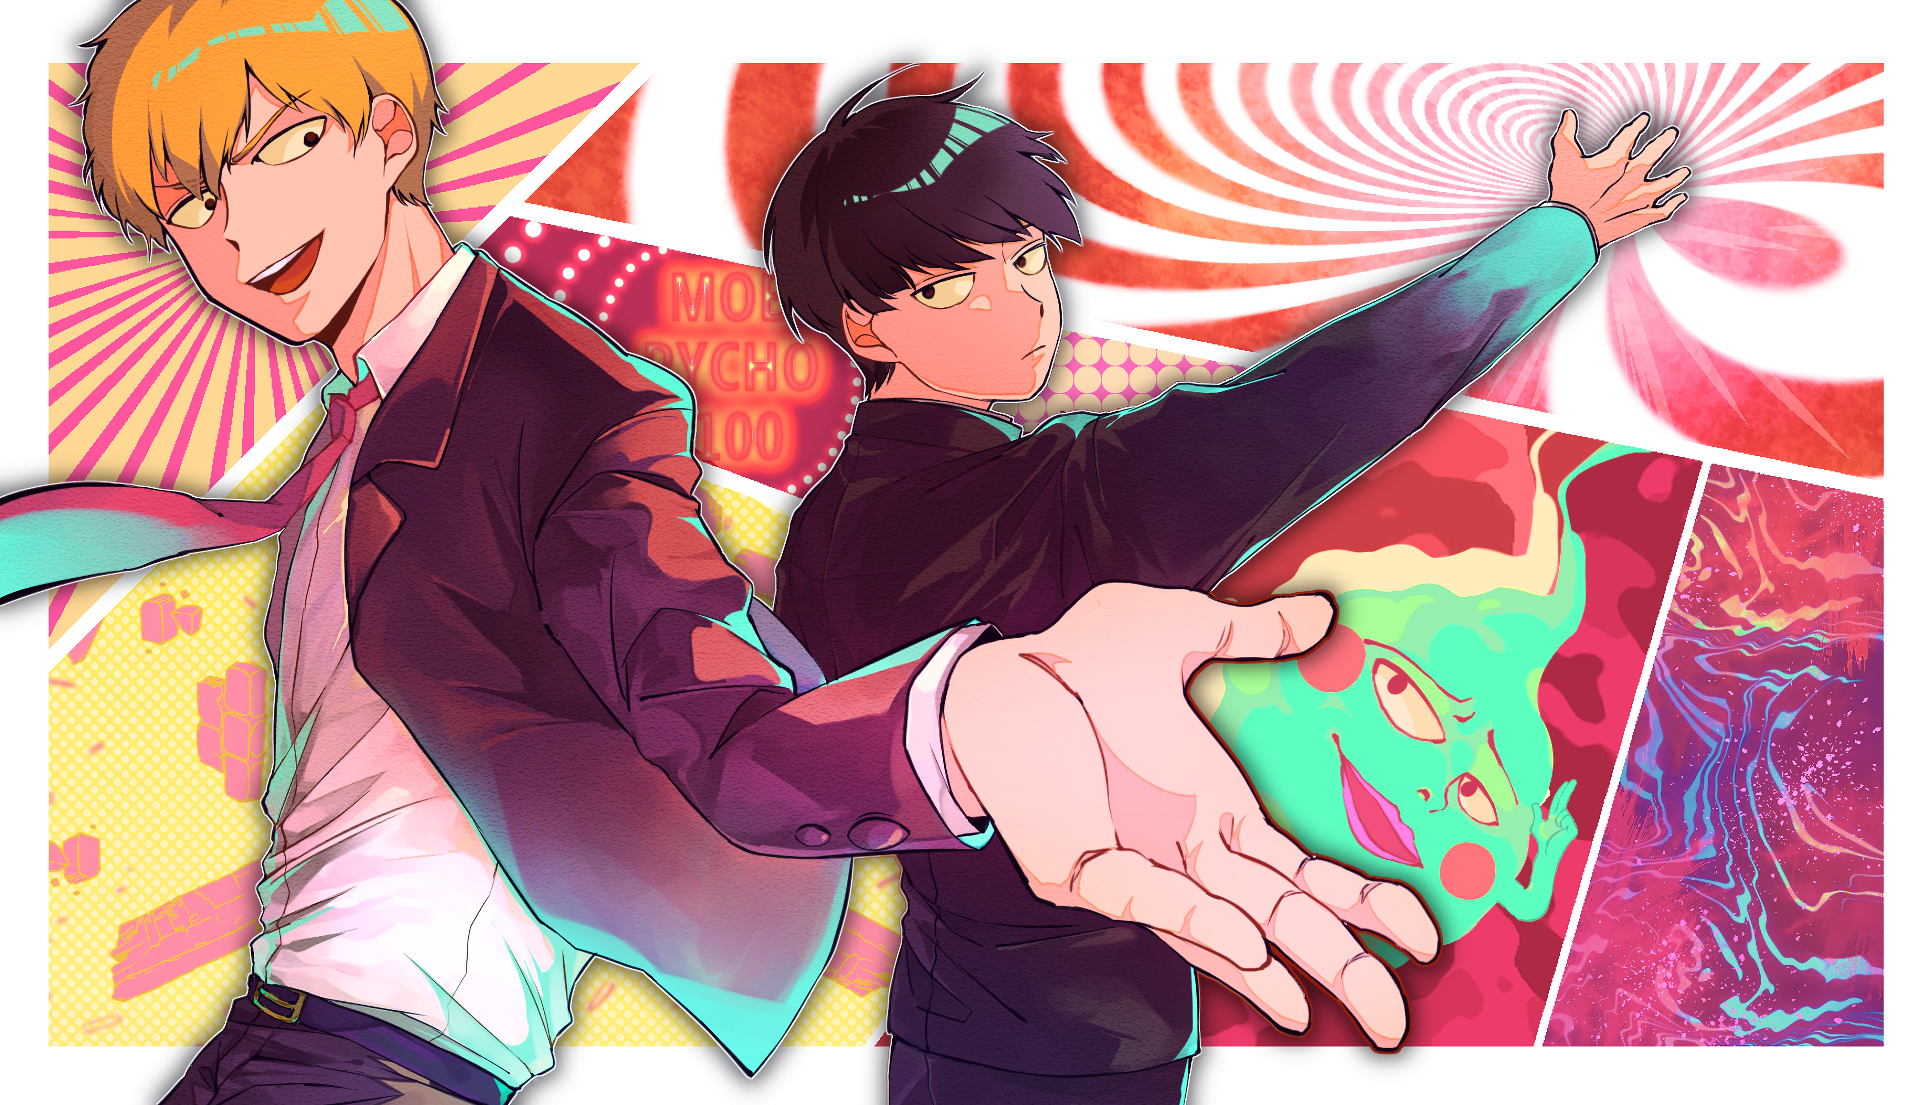 Mob Psycho 100 Wallpaper and Background Image   1919x1105 ...